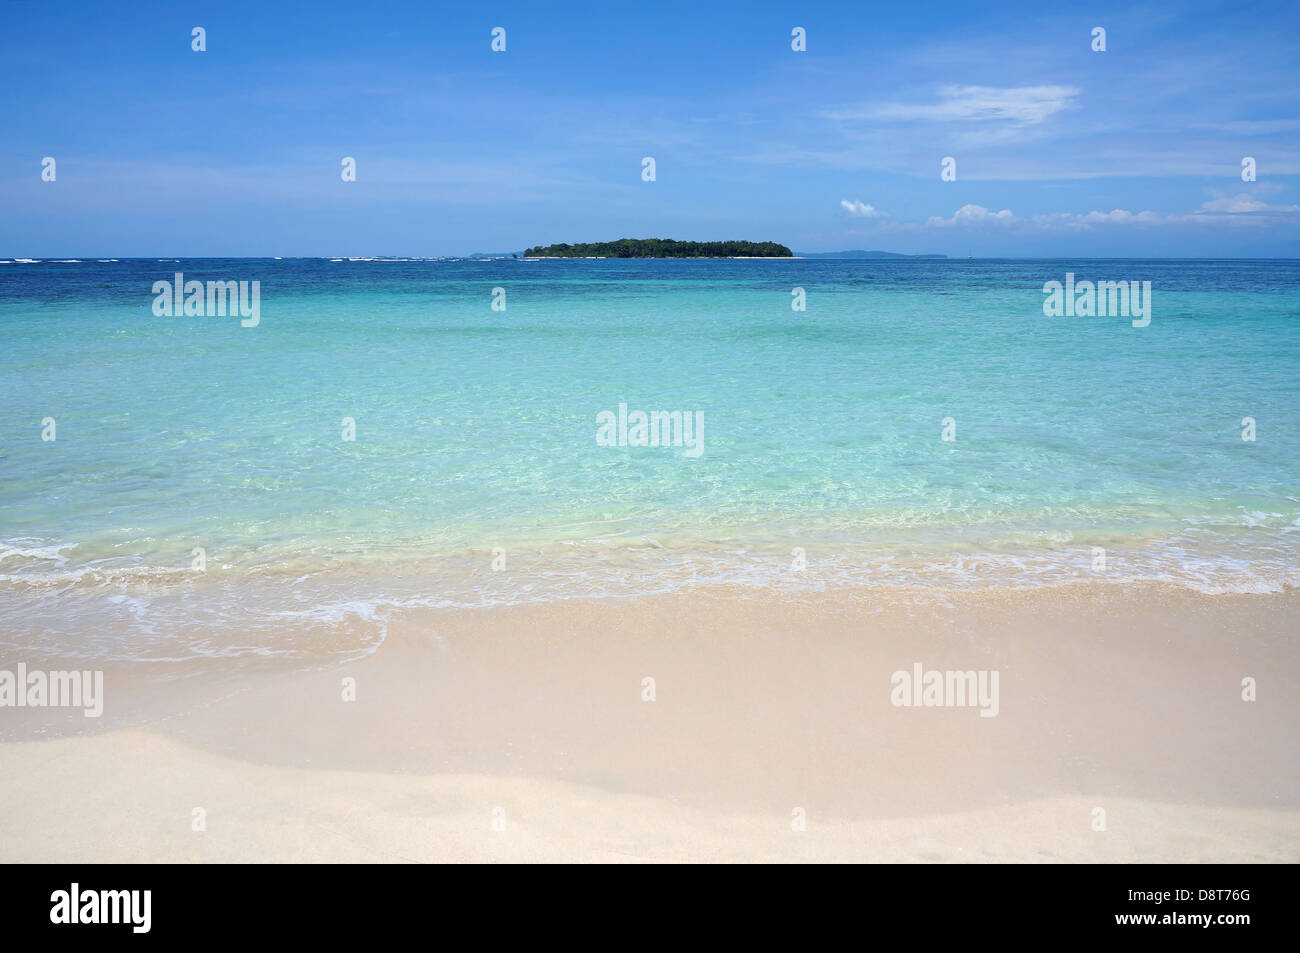 Tropical sandy beach shore with turquoise water and an island at the horizon, Caribbean sea - Stock Image